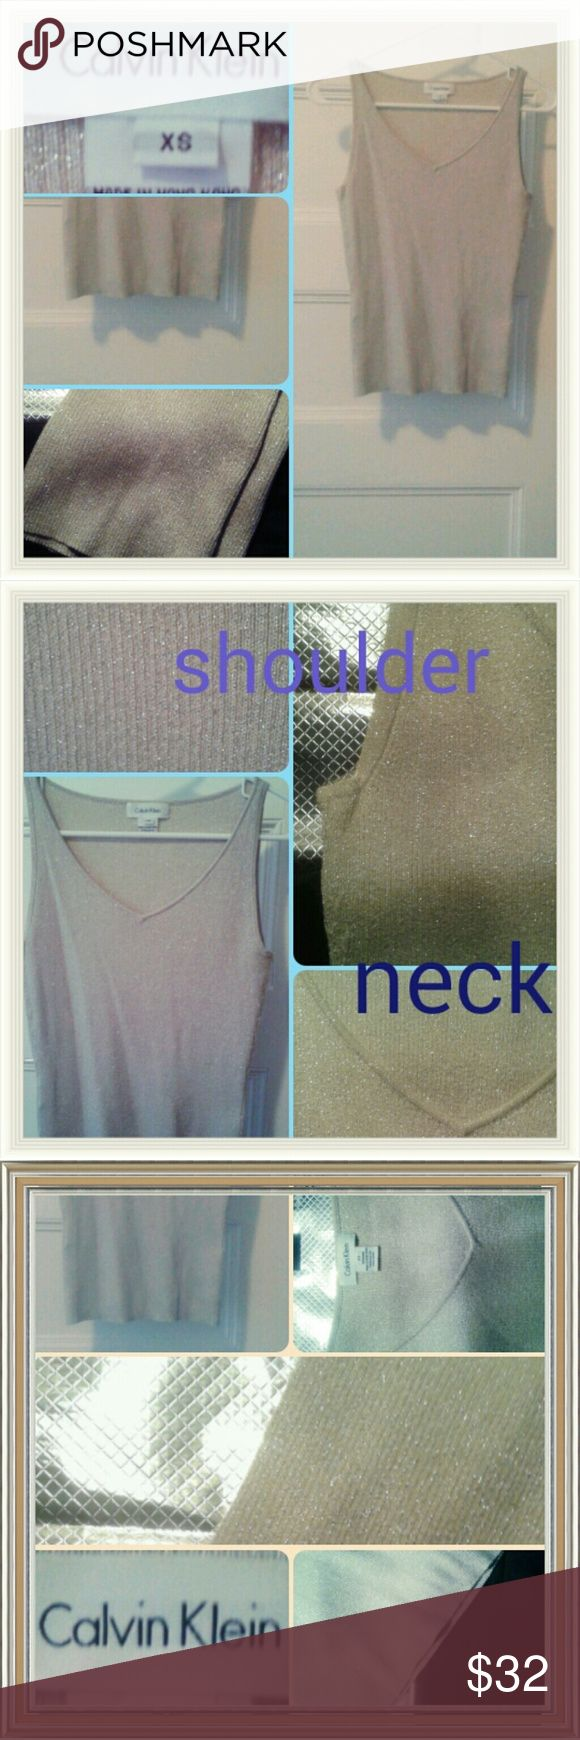 CALVIN KLEIN TOP Designer Calvin Klein this is a beautiful sleeveless tank top a light gray to silver color with metallic embossed on the whole top front and back you will Shimmer beautiful as you wear it out in the evening in the daytime you will Sparkle size extra small but if you are small you can fit it it's meant to be a fitted top brand new Final sale Calvin Klein Collection Tops Tank Tops